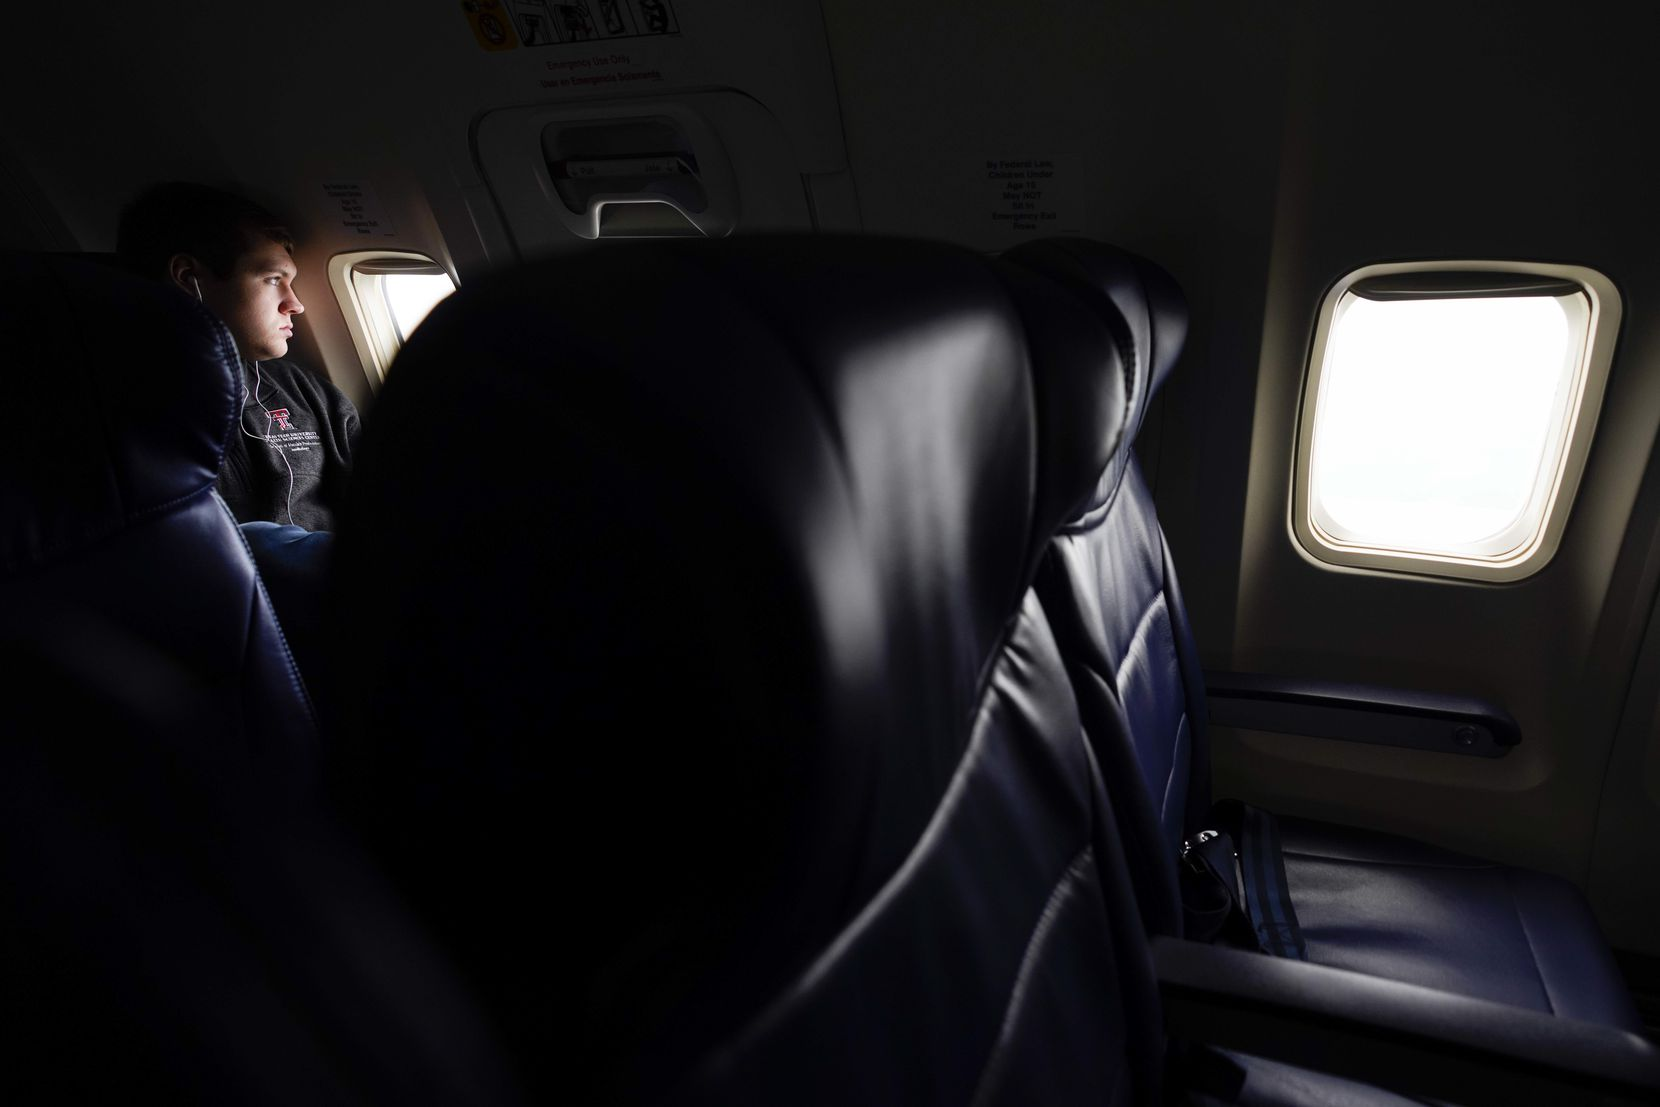 """Langdon Gund, a student at Texas Tech University studying for his doctorate in audiology at the School of Health Professions, had multiple rows to himself on a Southwest Airlines flight from Dallas Love Field to Houston Hobby on March 20, 2020.  The 737-700, configured to accommodate 143 passengers, carried fewer than 50, including passengers from a canceled previous flight to Houston. Gund was returning home to Beaumont and elected to fly for $58 instead of making the roughly 10-hour drive. """"I waited so long because we have to work in the clinic at the school, and they wouldn't cancel it. They finally canceled it yesterday."""""""